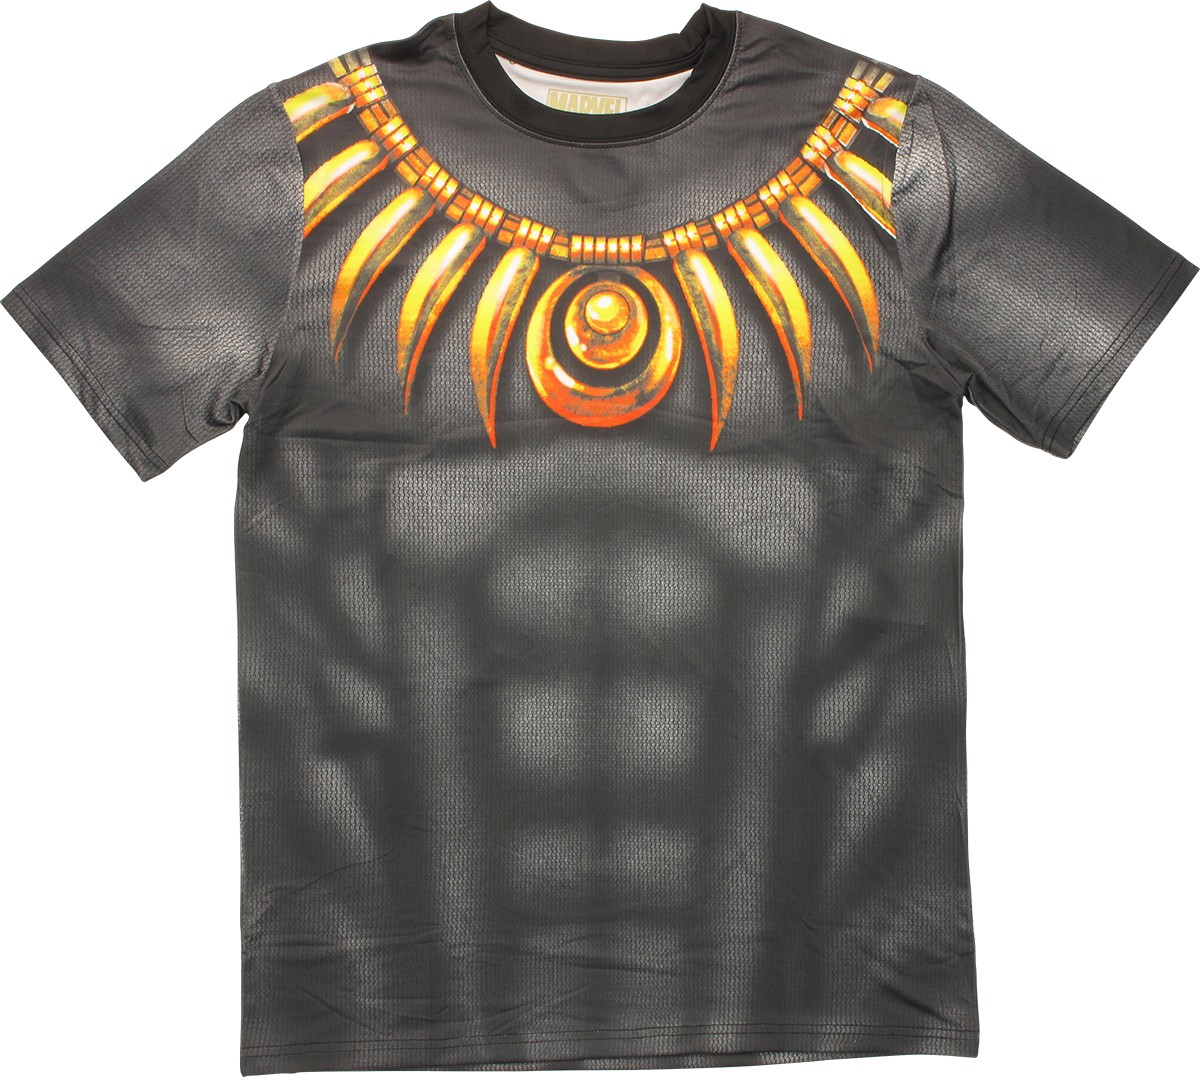 Black panther sublimated costume t shirt sheer for Costume t shirts online